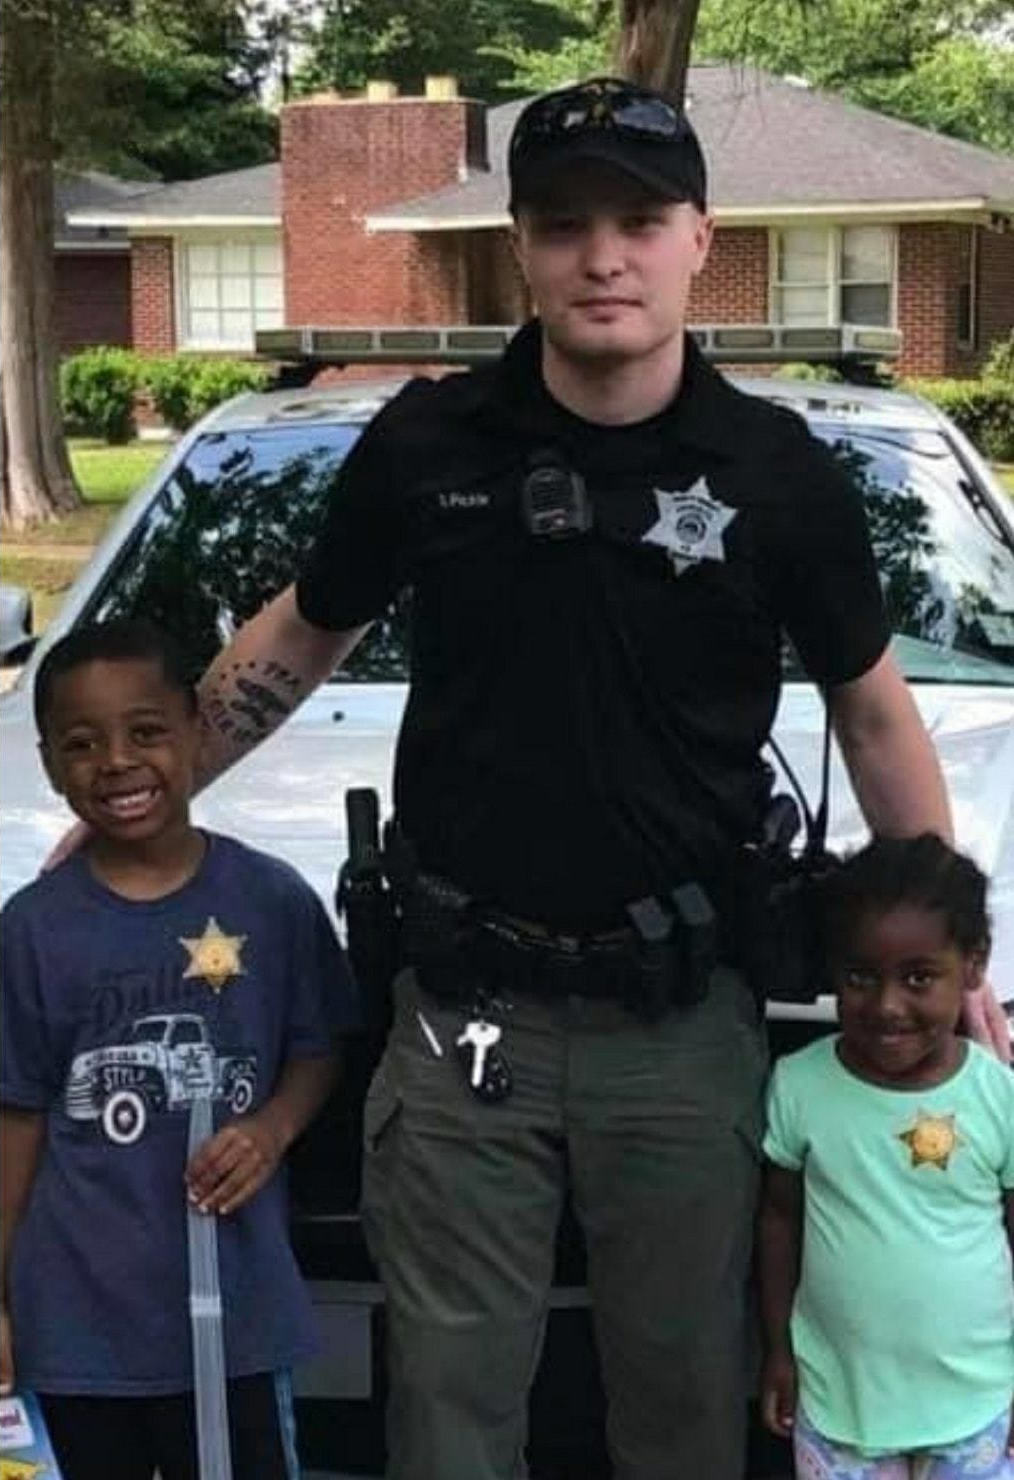 Deputy Sheriff Dylan S. Pickle | Monroe County Sheriff's Office, Mississippi